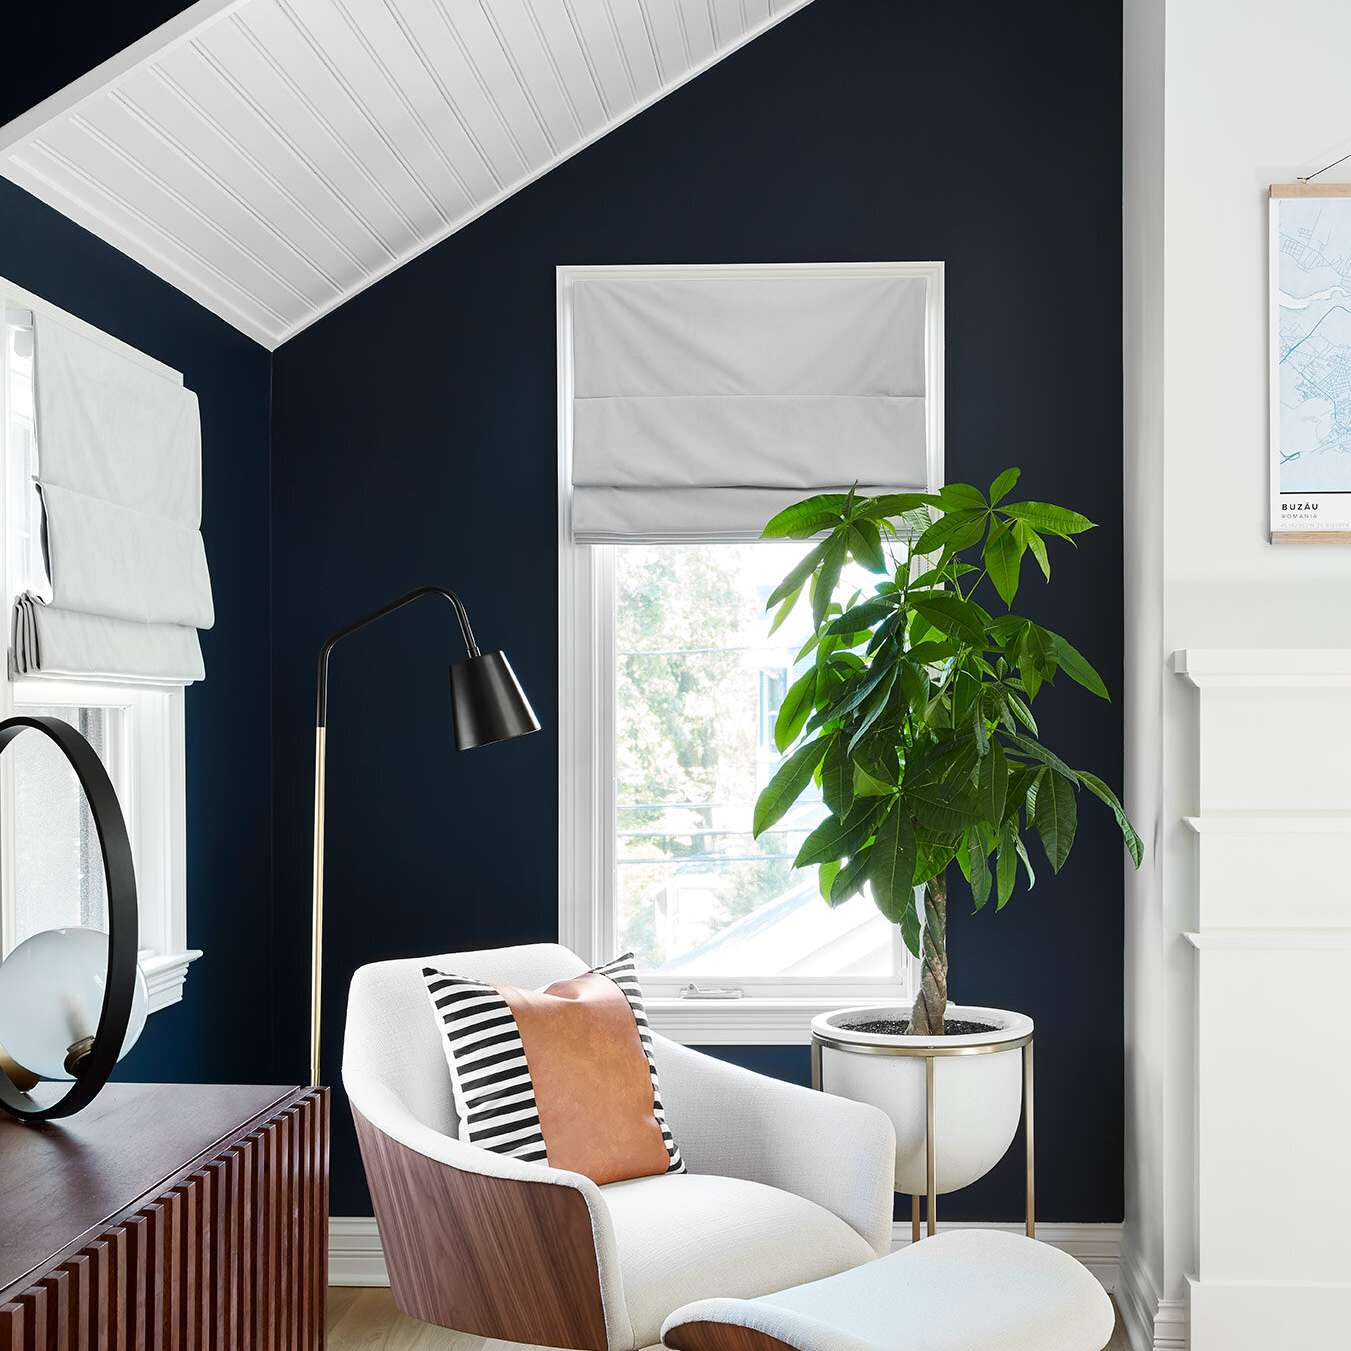 A bedroom corner with indigo walls and a white ceiling